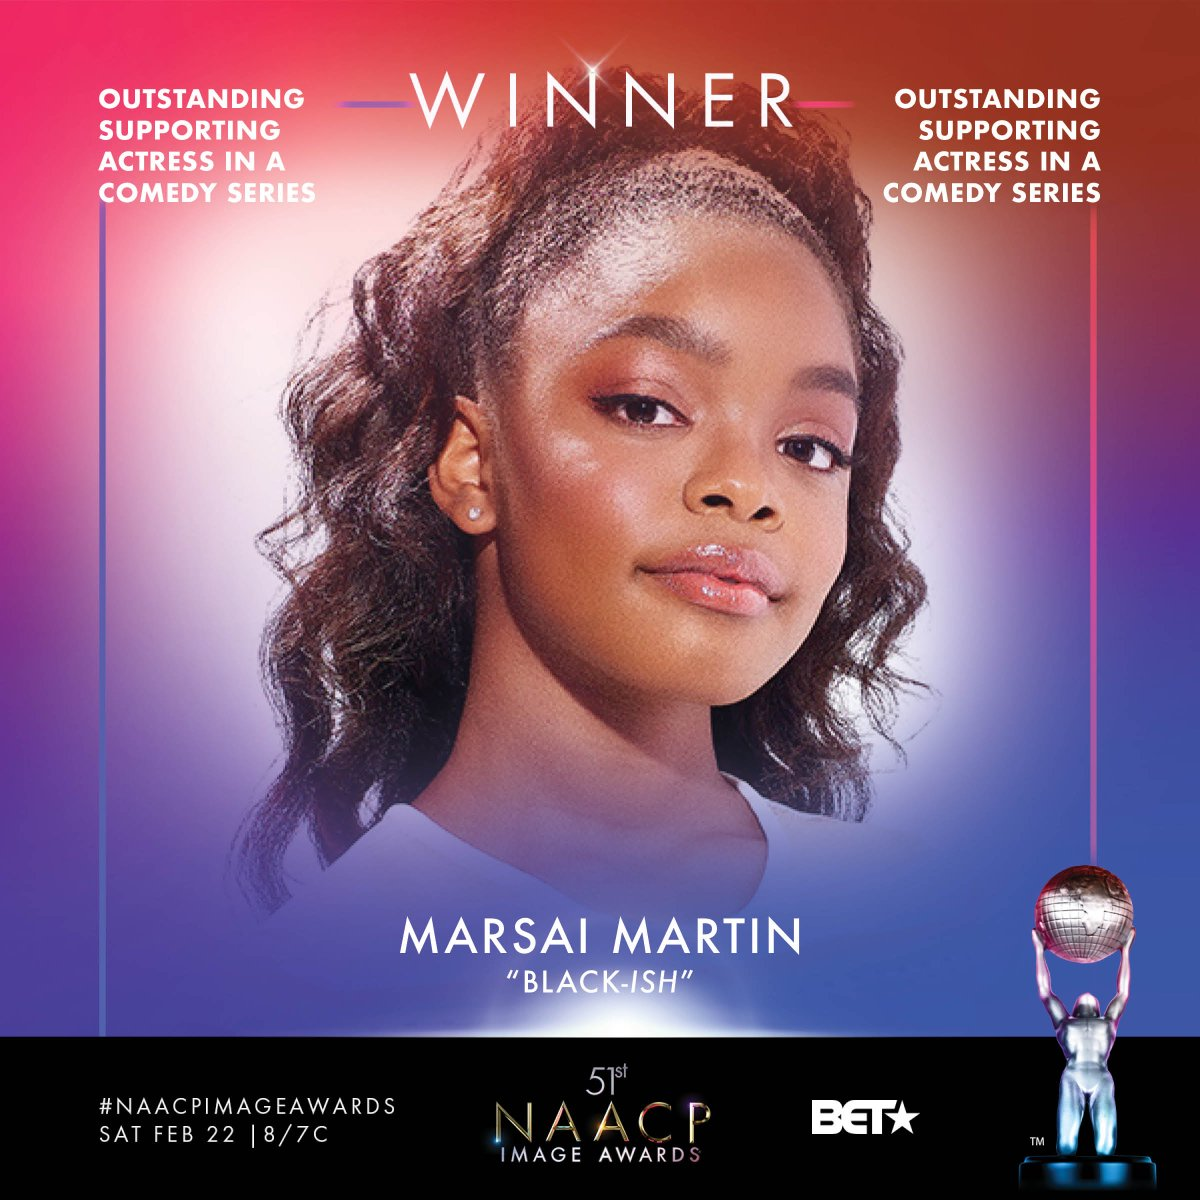 Congrats Outstanding Supporting Actress in a Comedy Series winner - @marsaimartin  #NAACPImageAwards